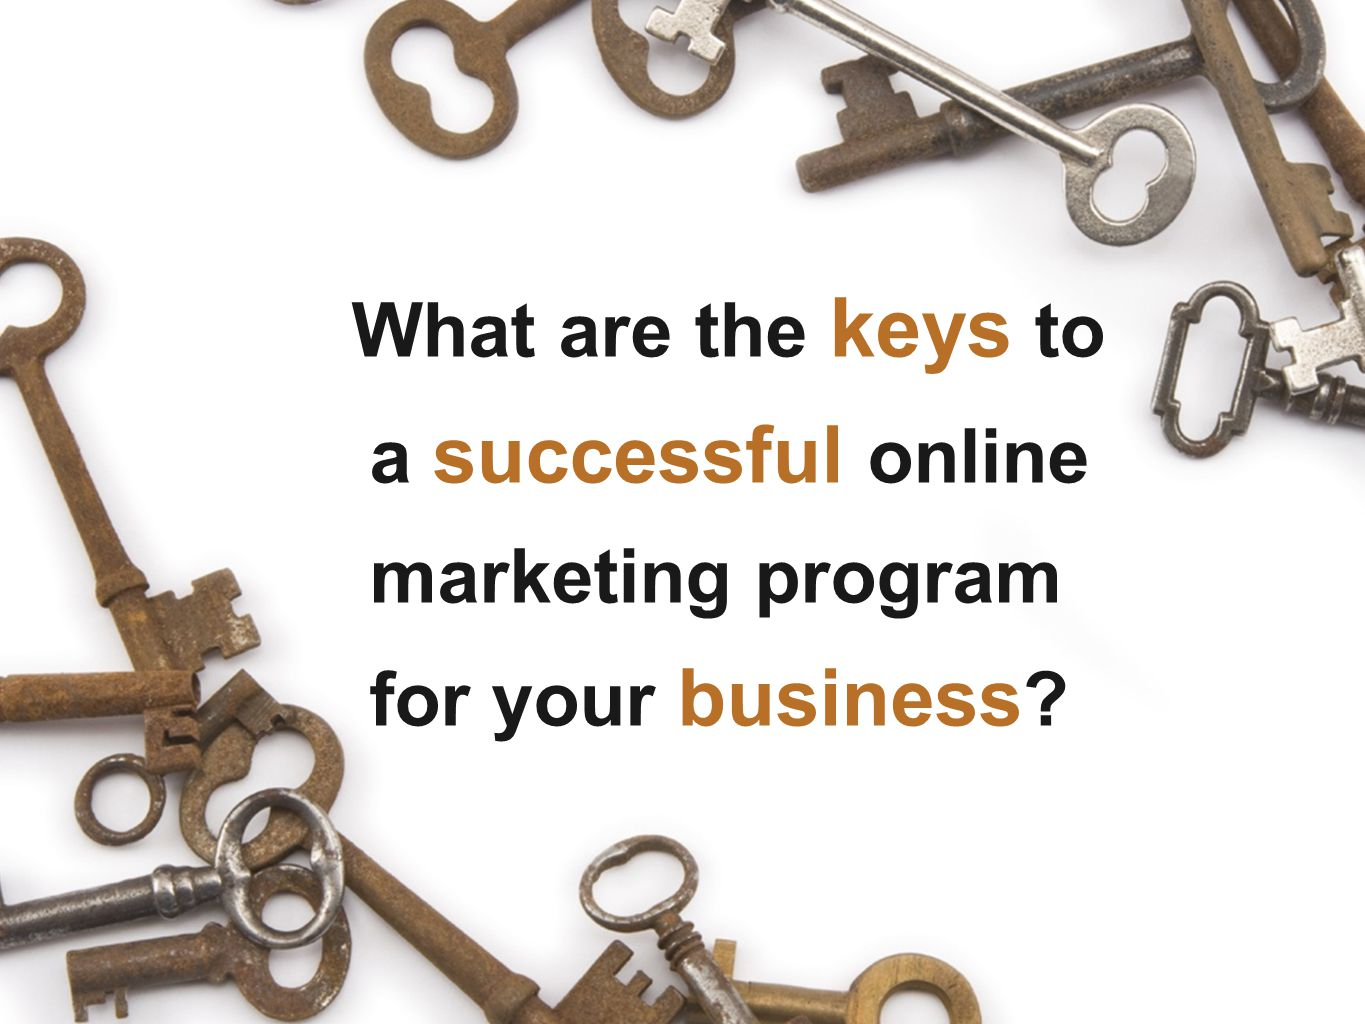 What are the keys to a successful online marketing program for your business